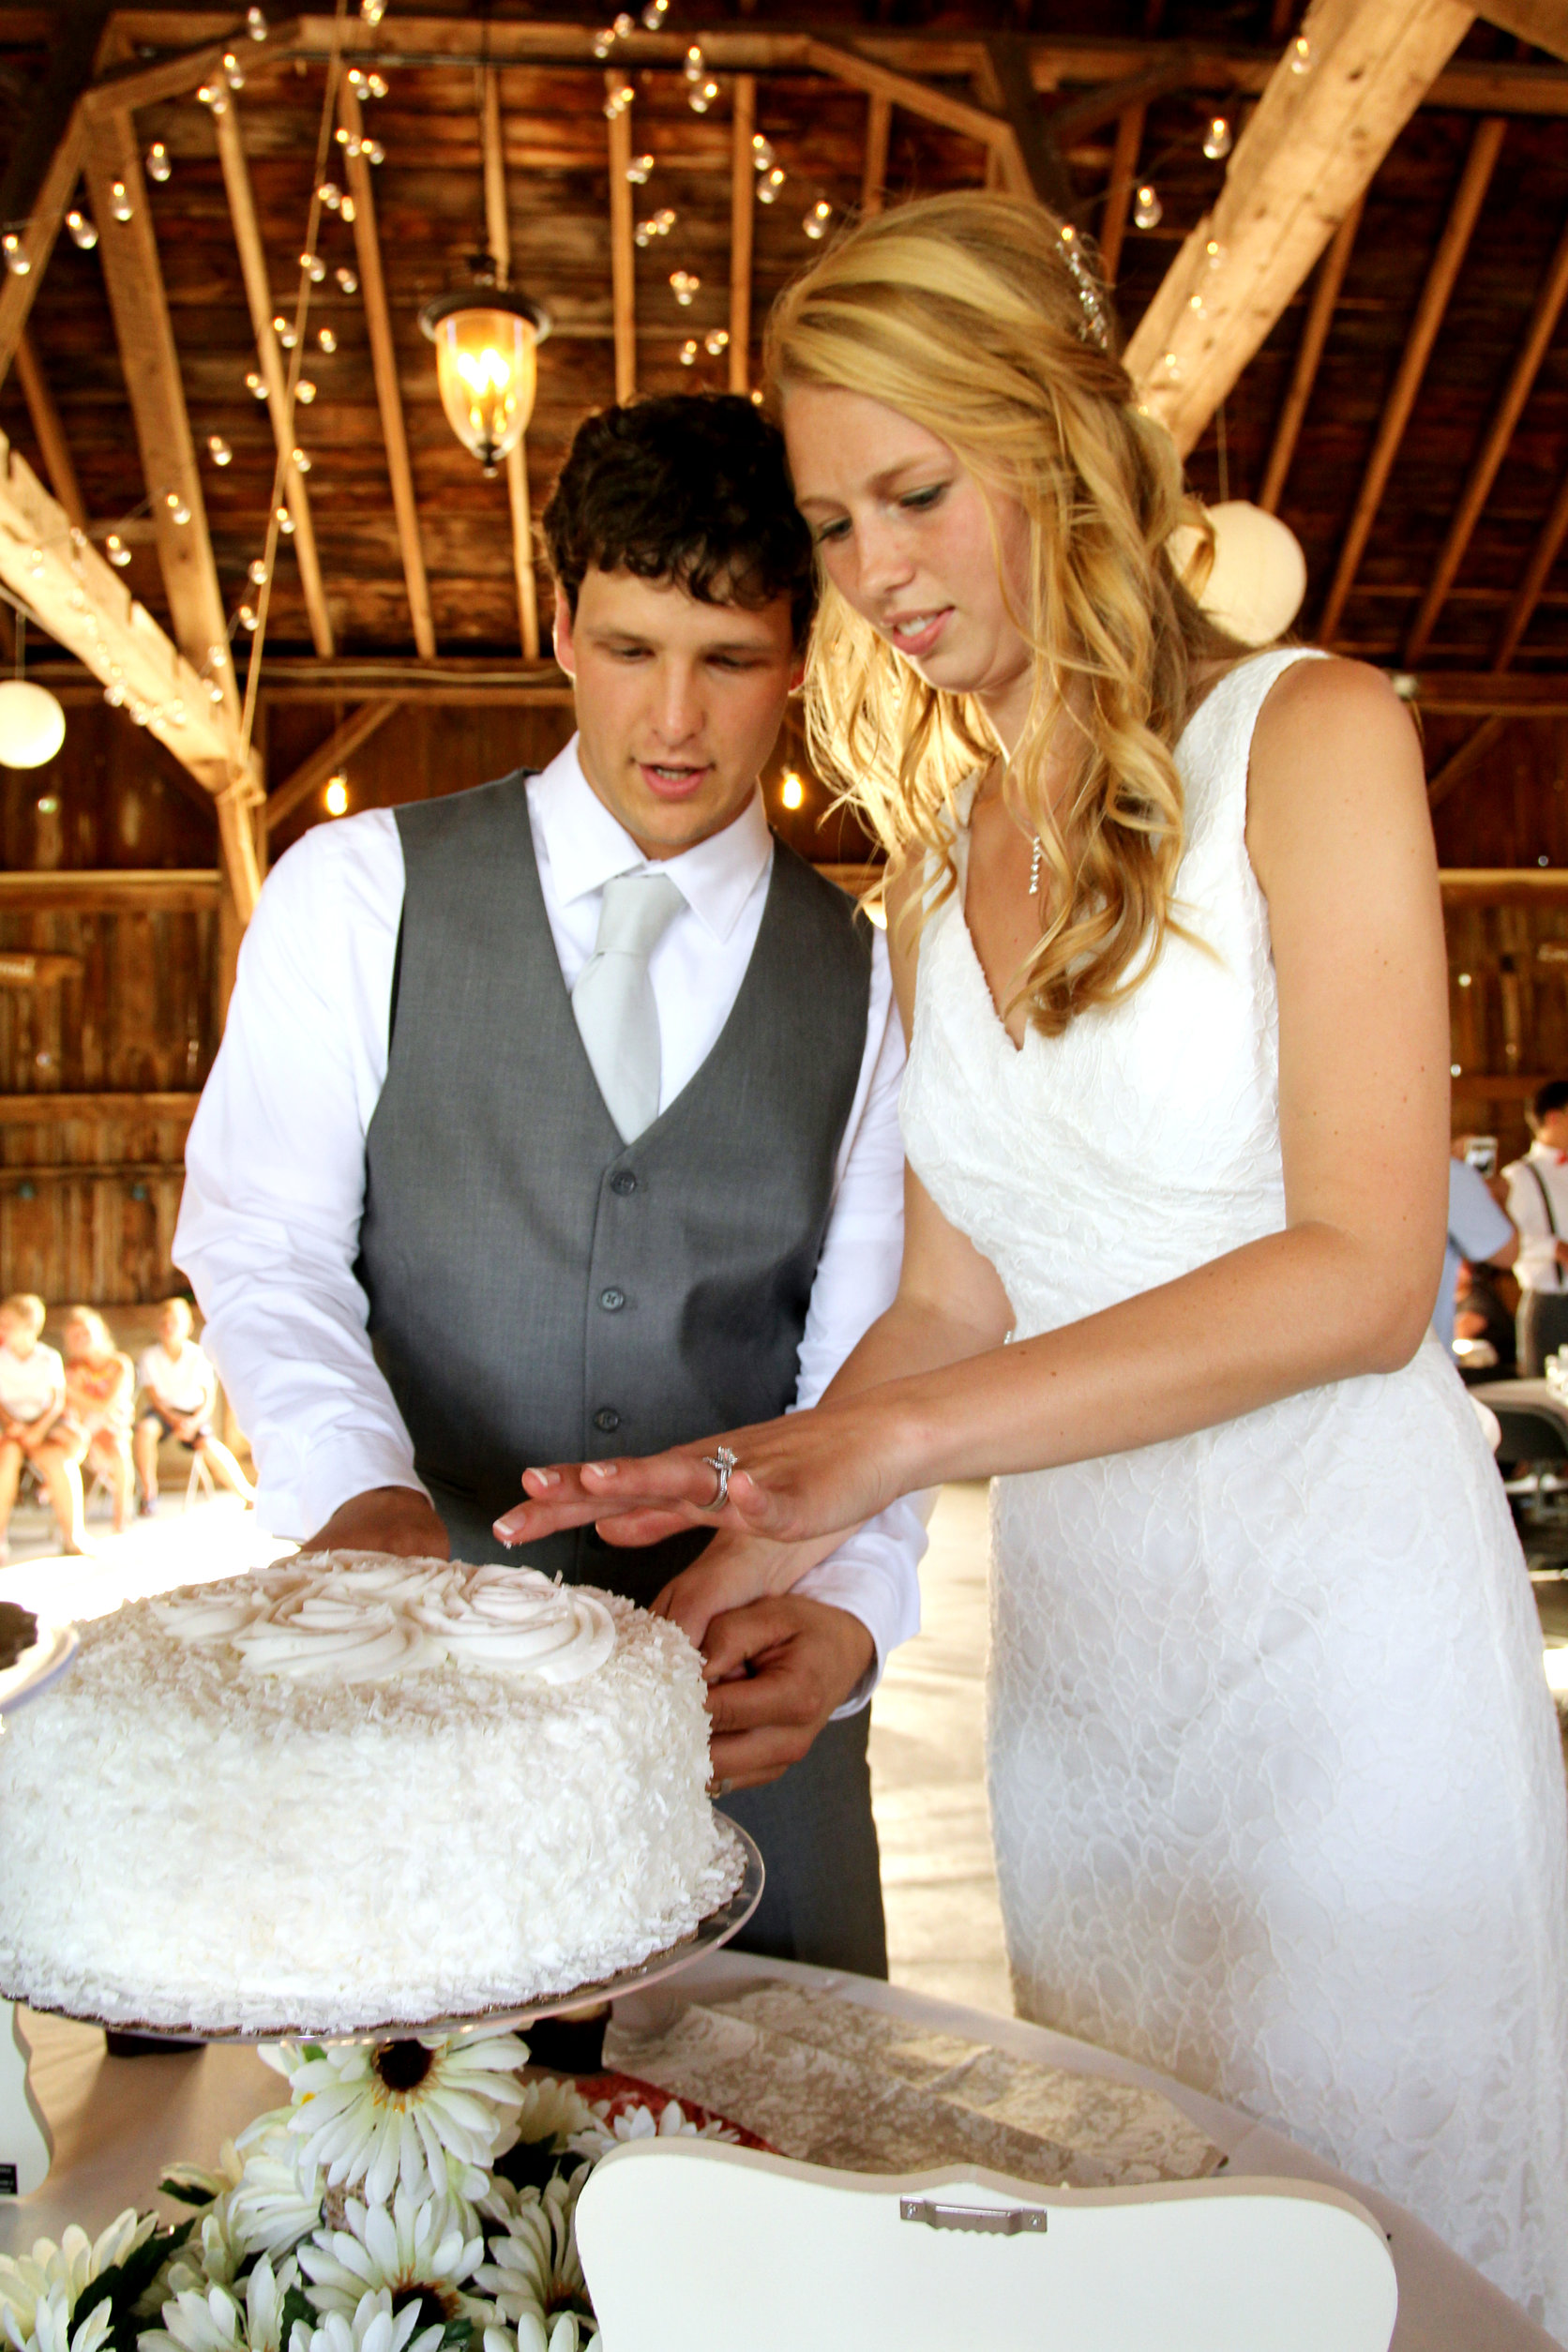 Bride And Groom Cut Wedding Cake At Barn Venue Blodgett In Schoolcraft